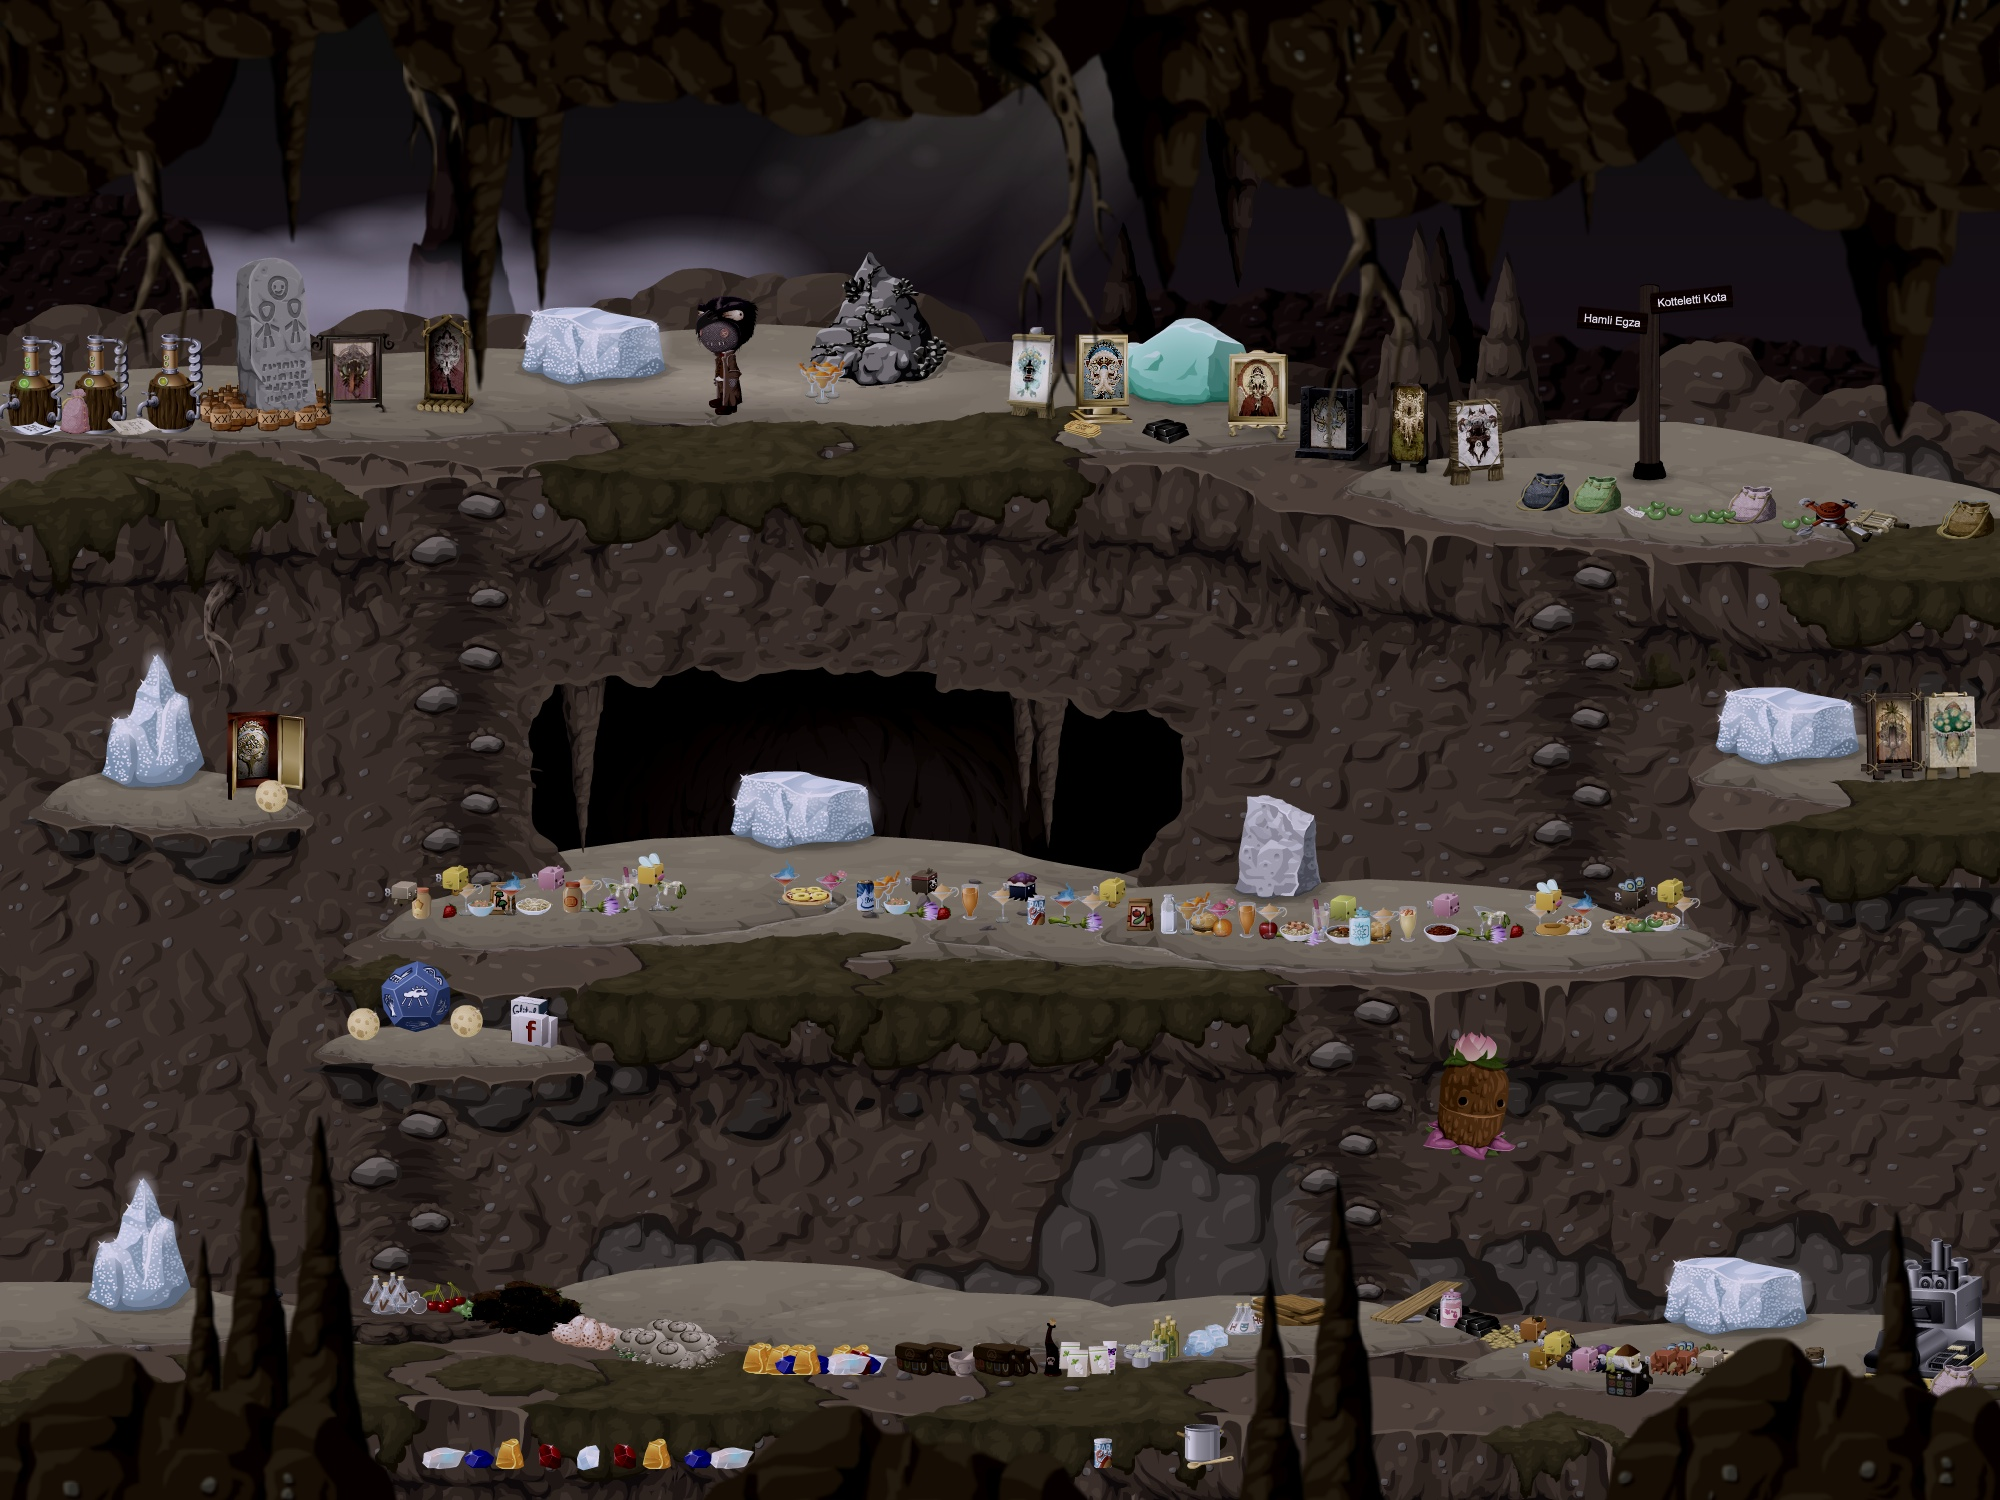 A glitch stands in the mines of Pollokoo. Most of the ledges and platforms are covered with an assortment of items.